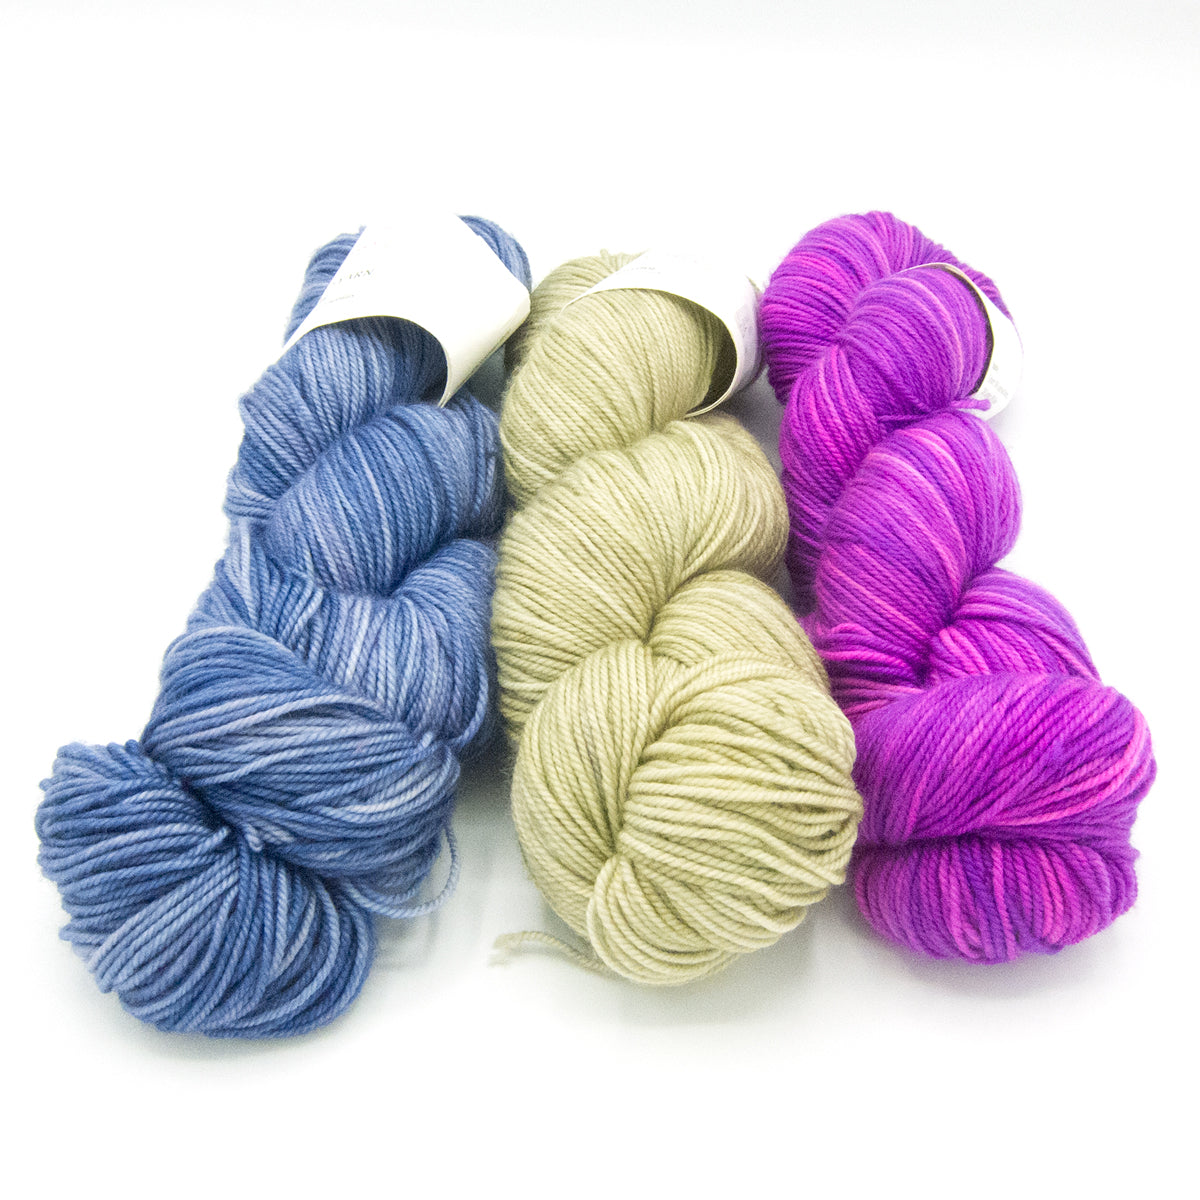 Three skeins of hand dyed yarn.  Medium purply blue, light yellow and bright pink.